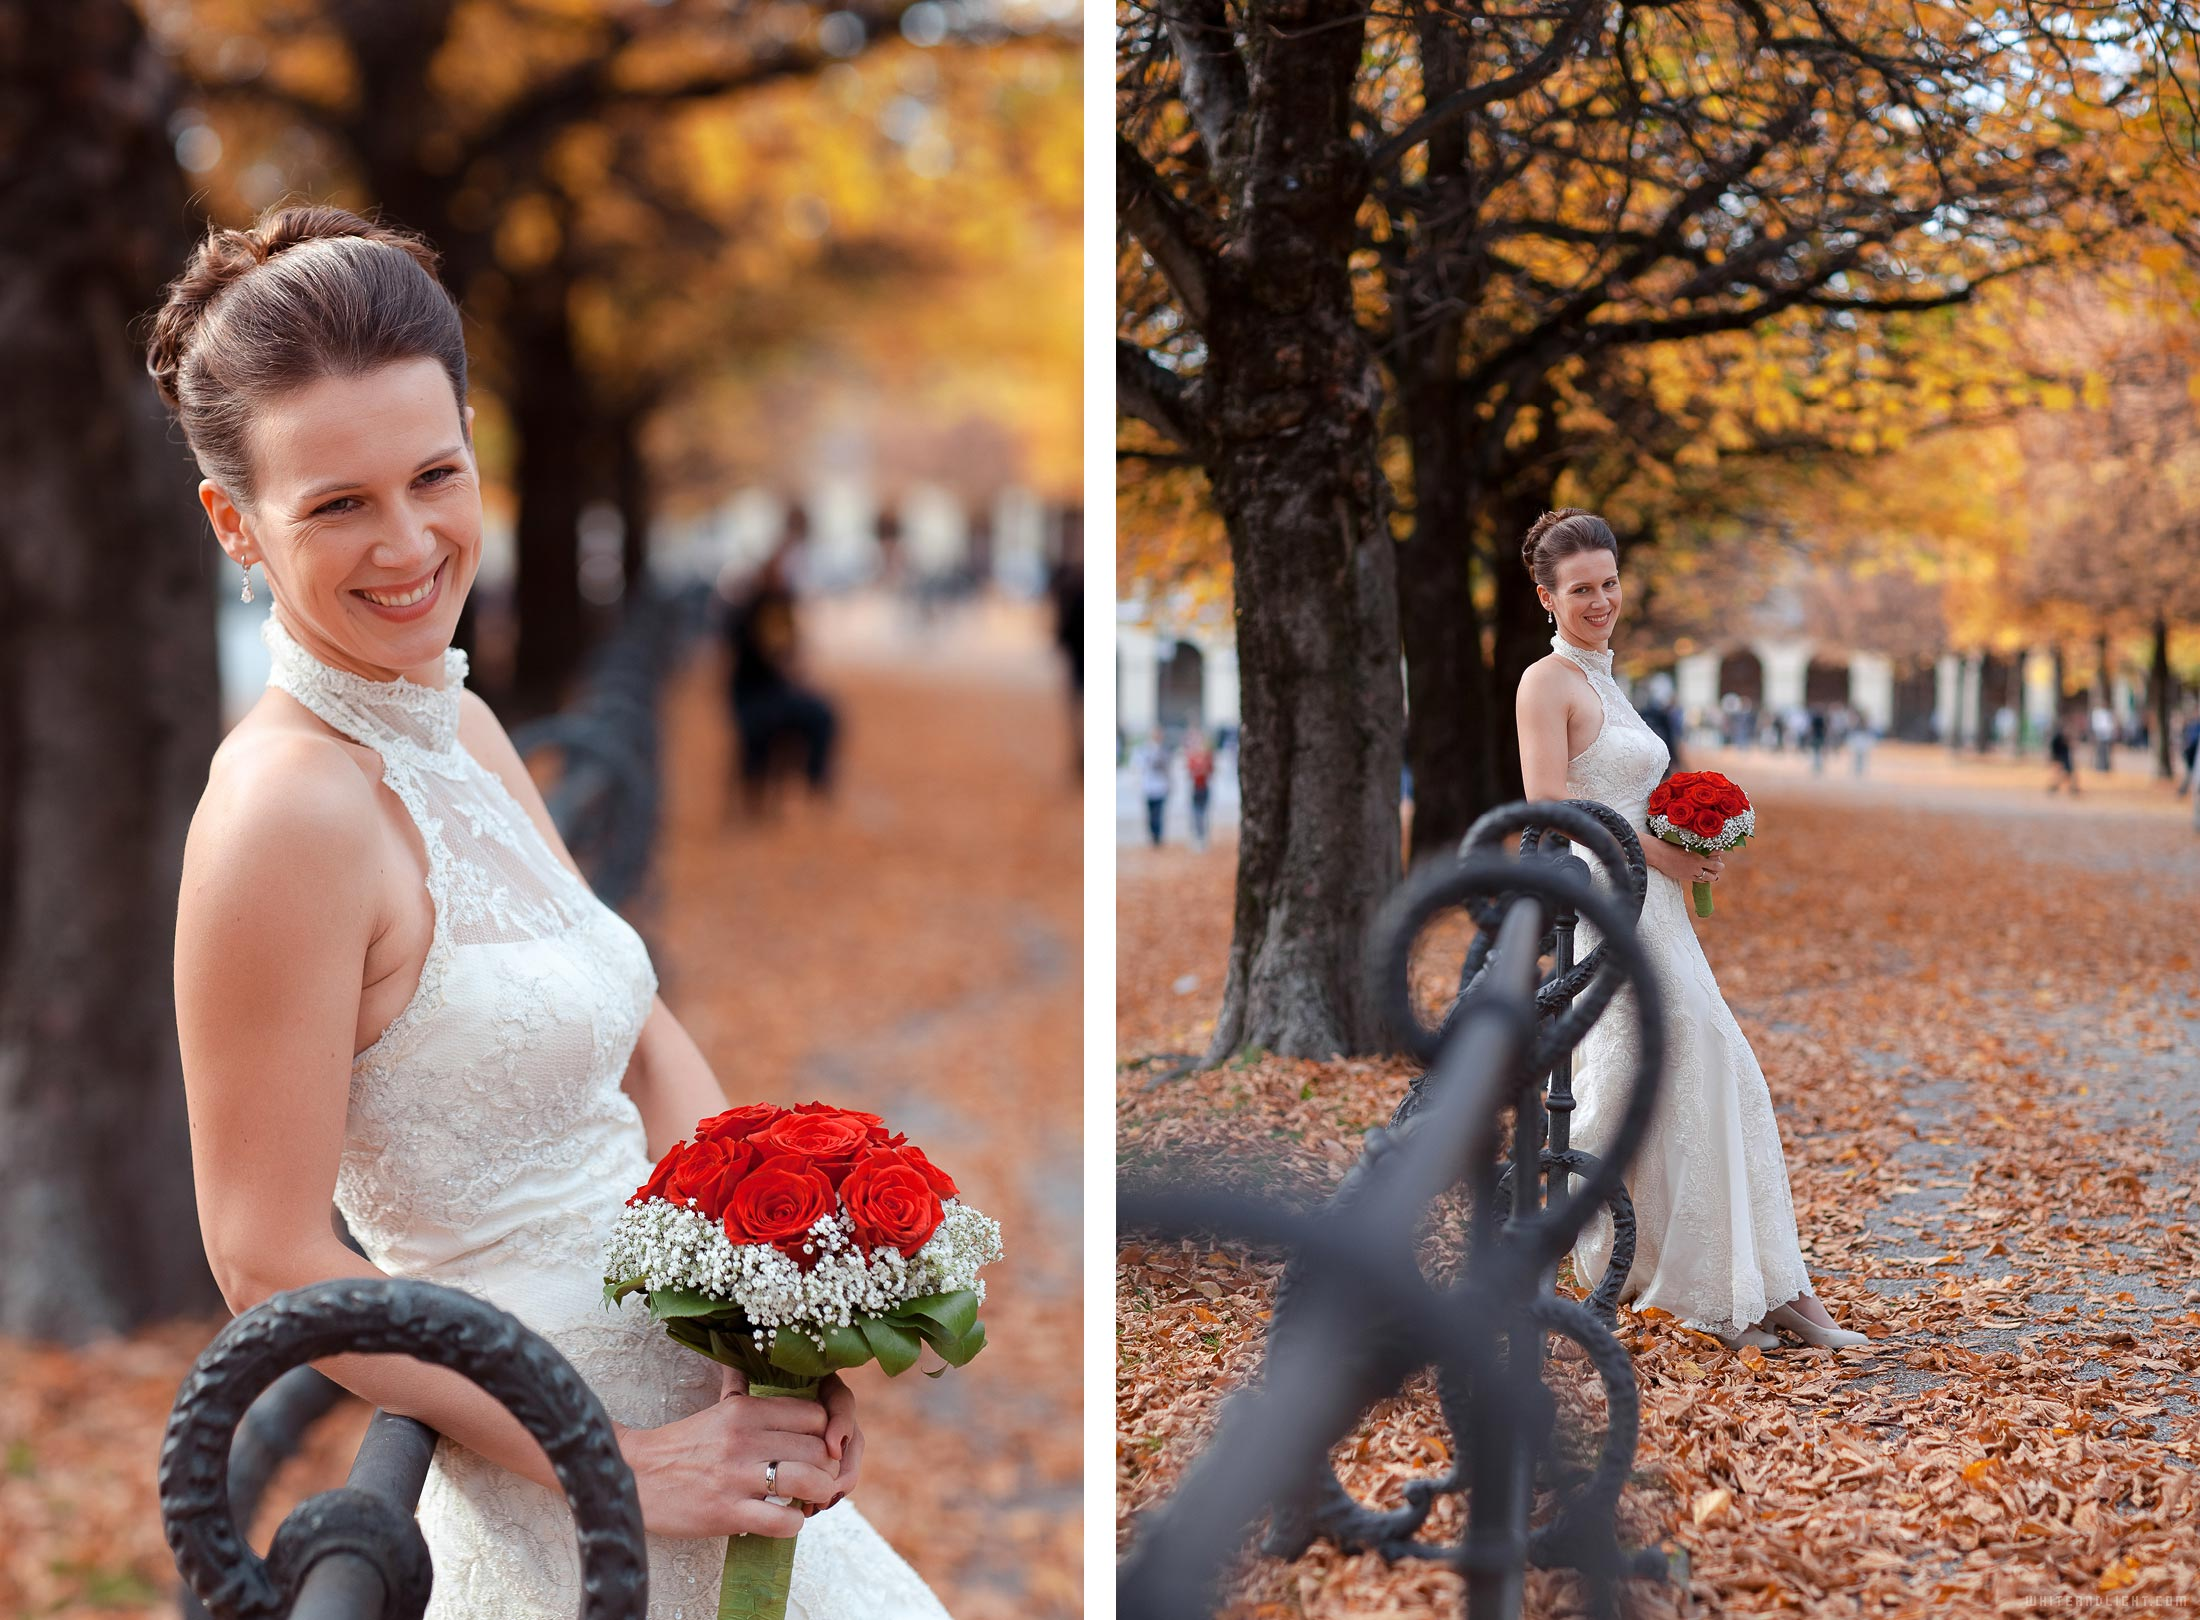 Wedding photographer Hofgarten - wedding photographer packages